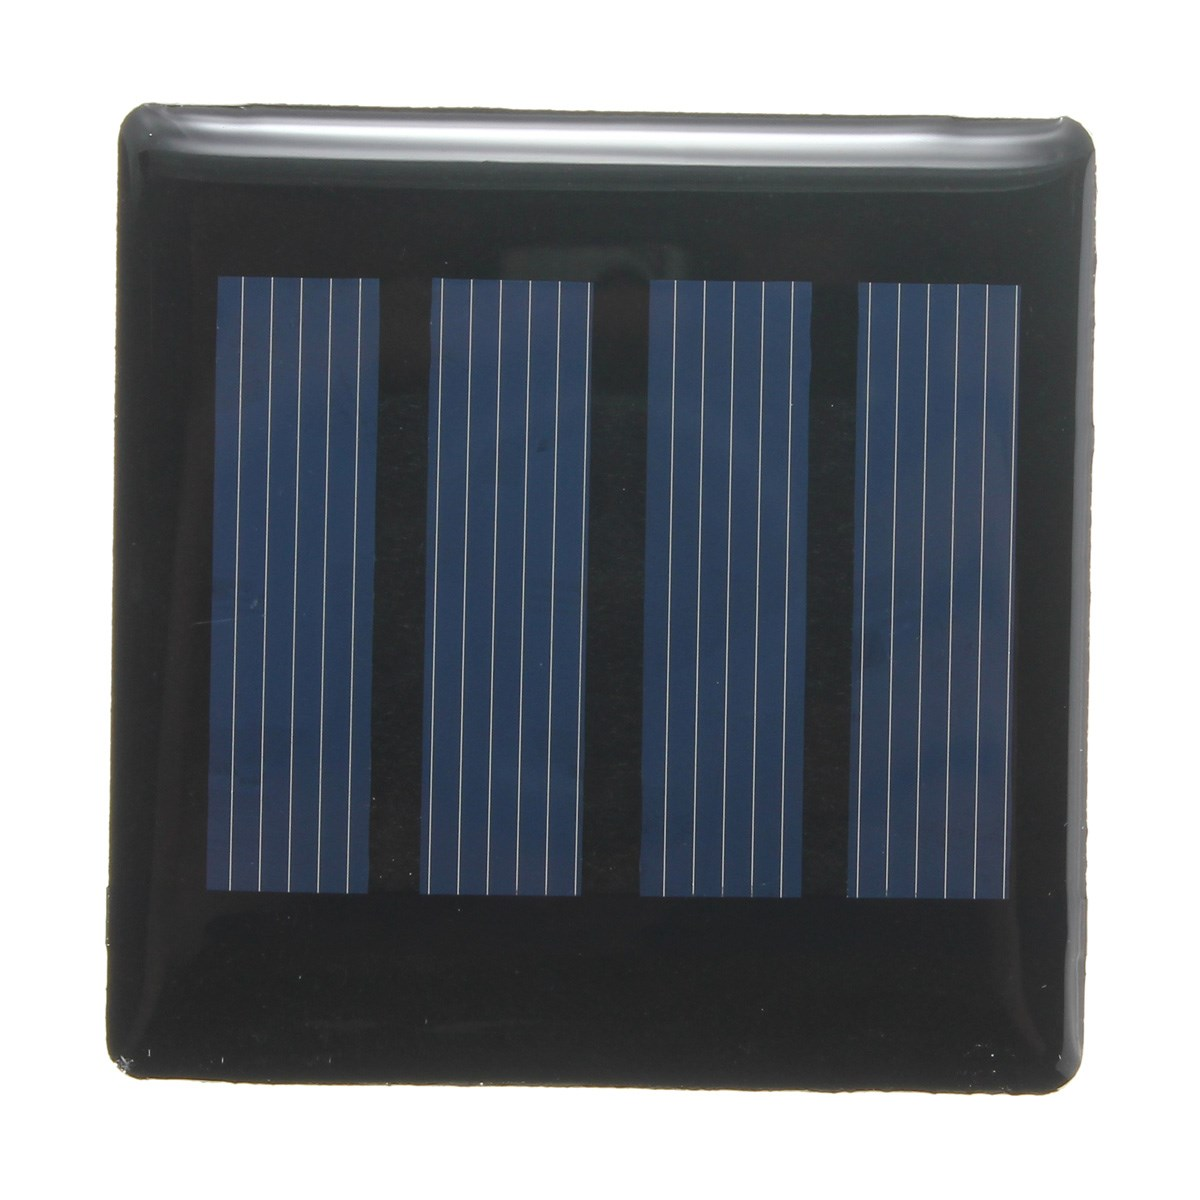 universal 0.18W 2V 90mAh Polycrystalline Silicon Epoxy Solar Panel DIY Power Model mini Solar Cells Battery Mobile Phone Charger